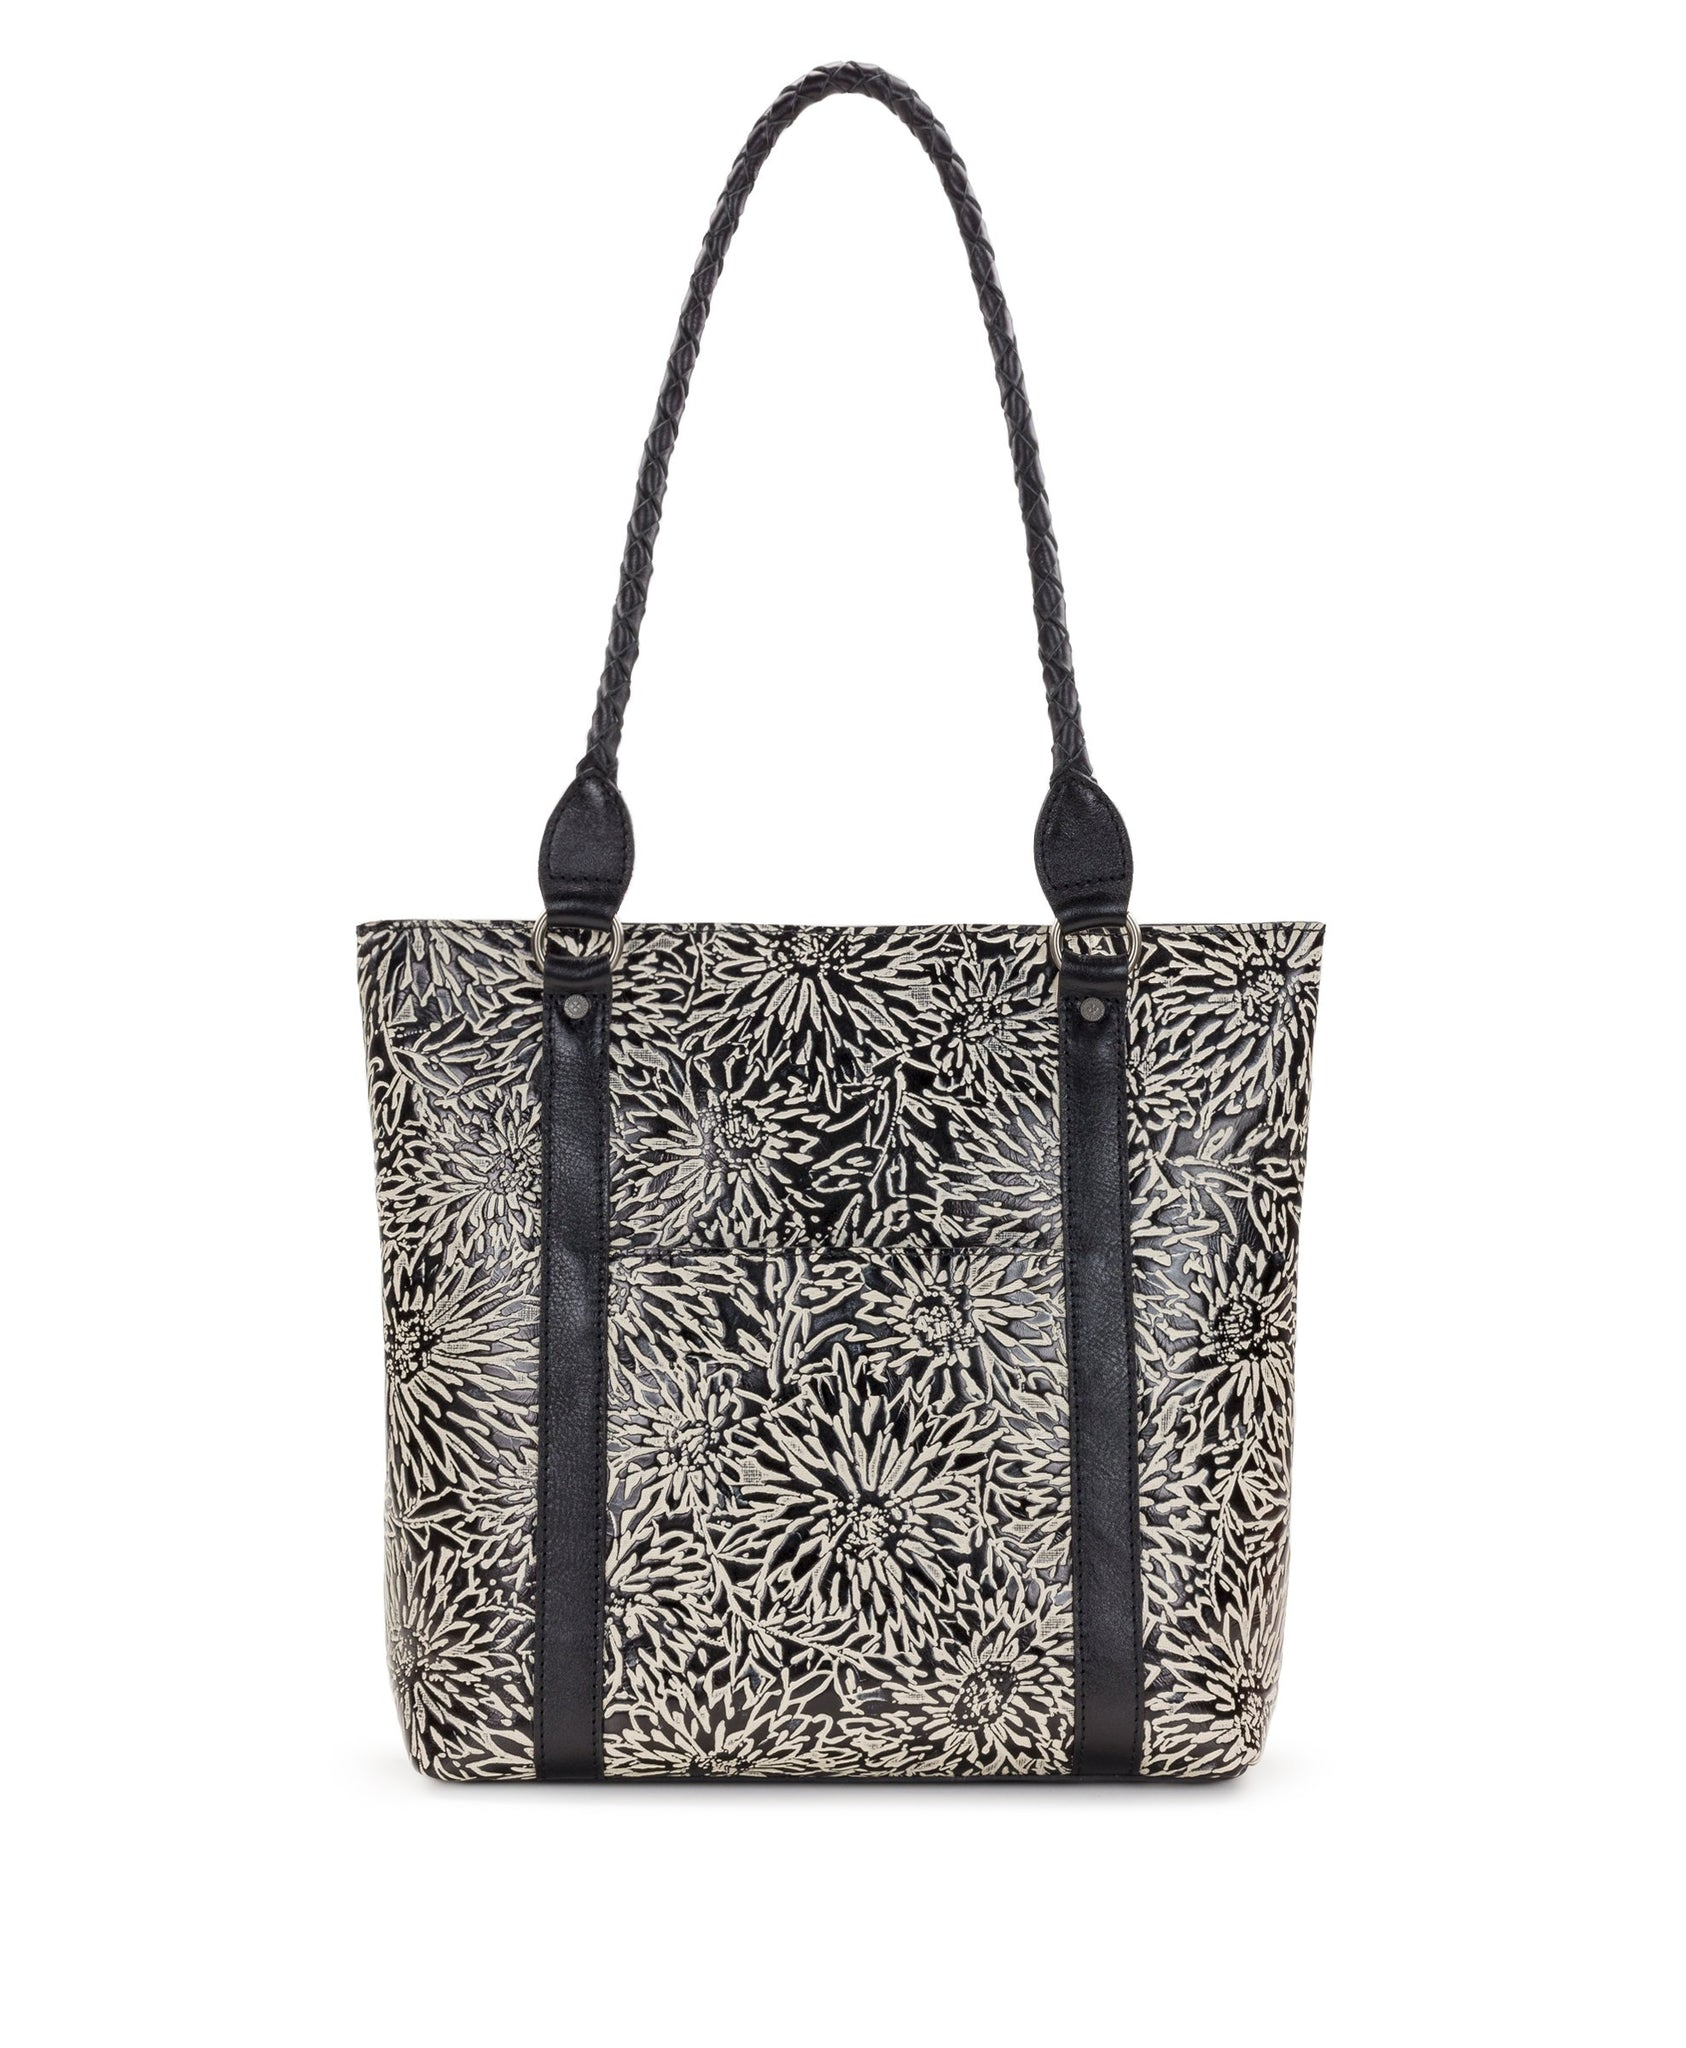 Rena Tote - Sunflower Tooling